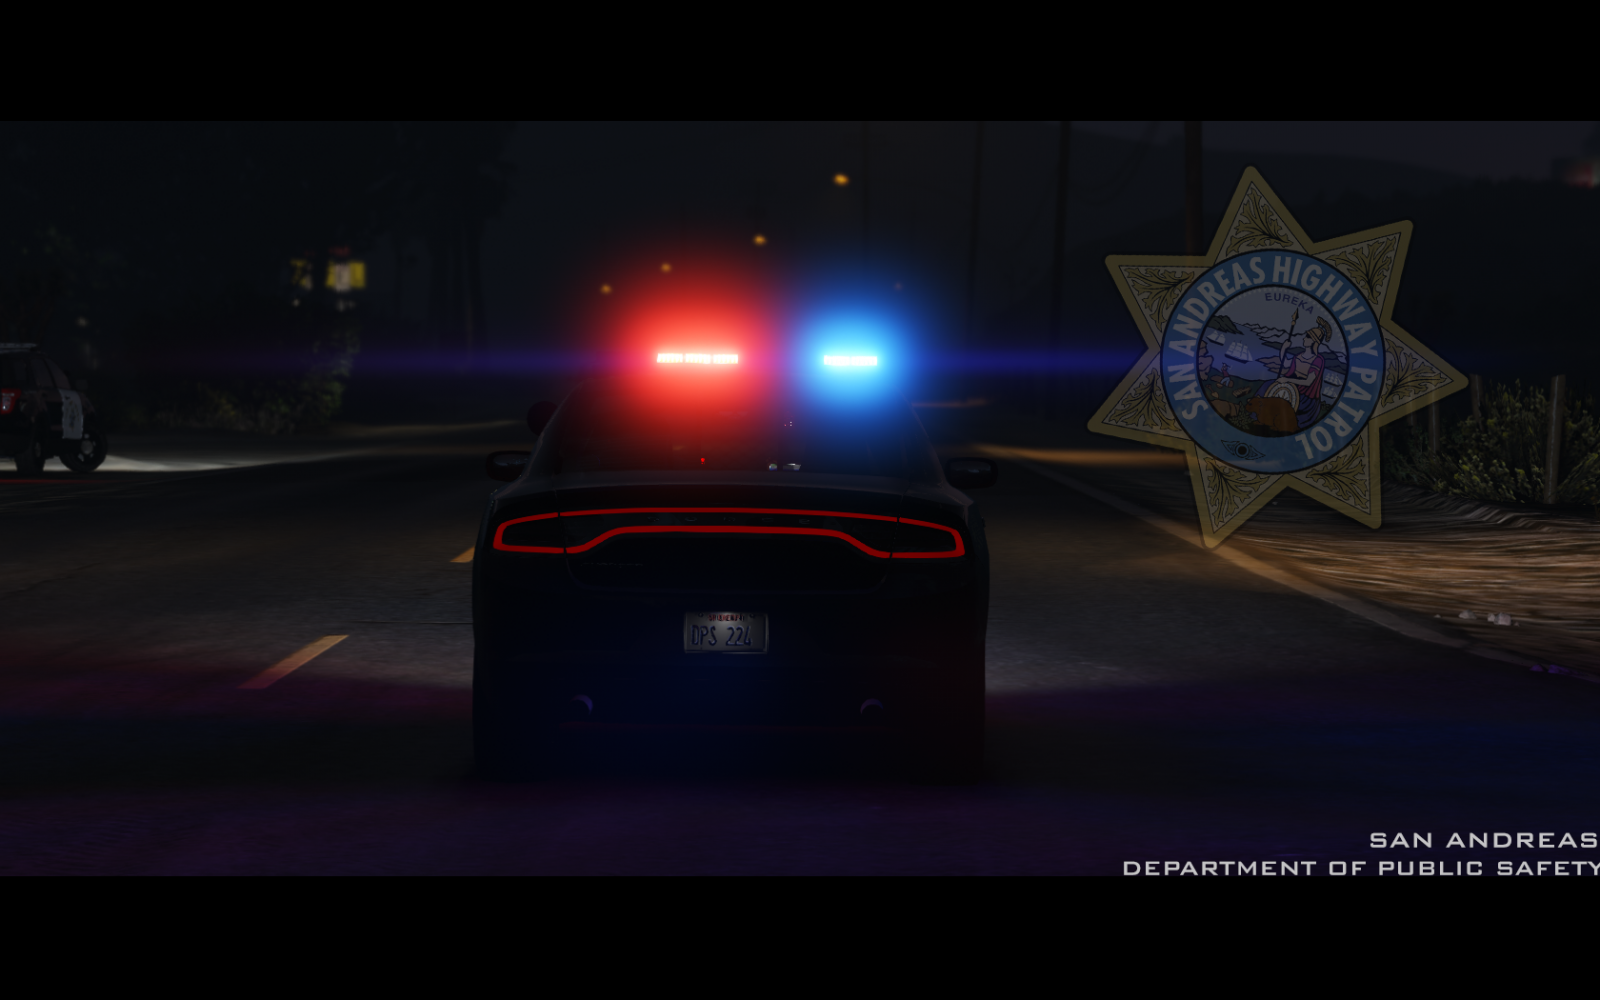 San Andreas Department of Public Safety